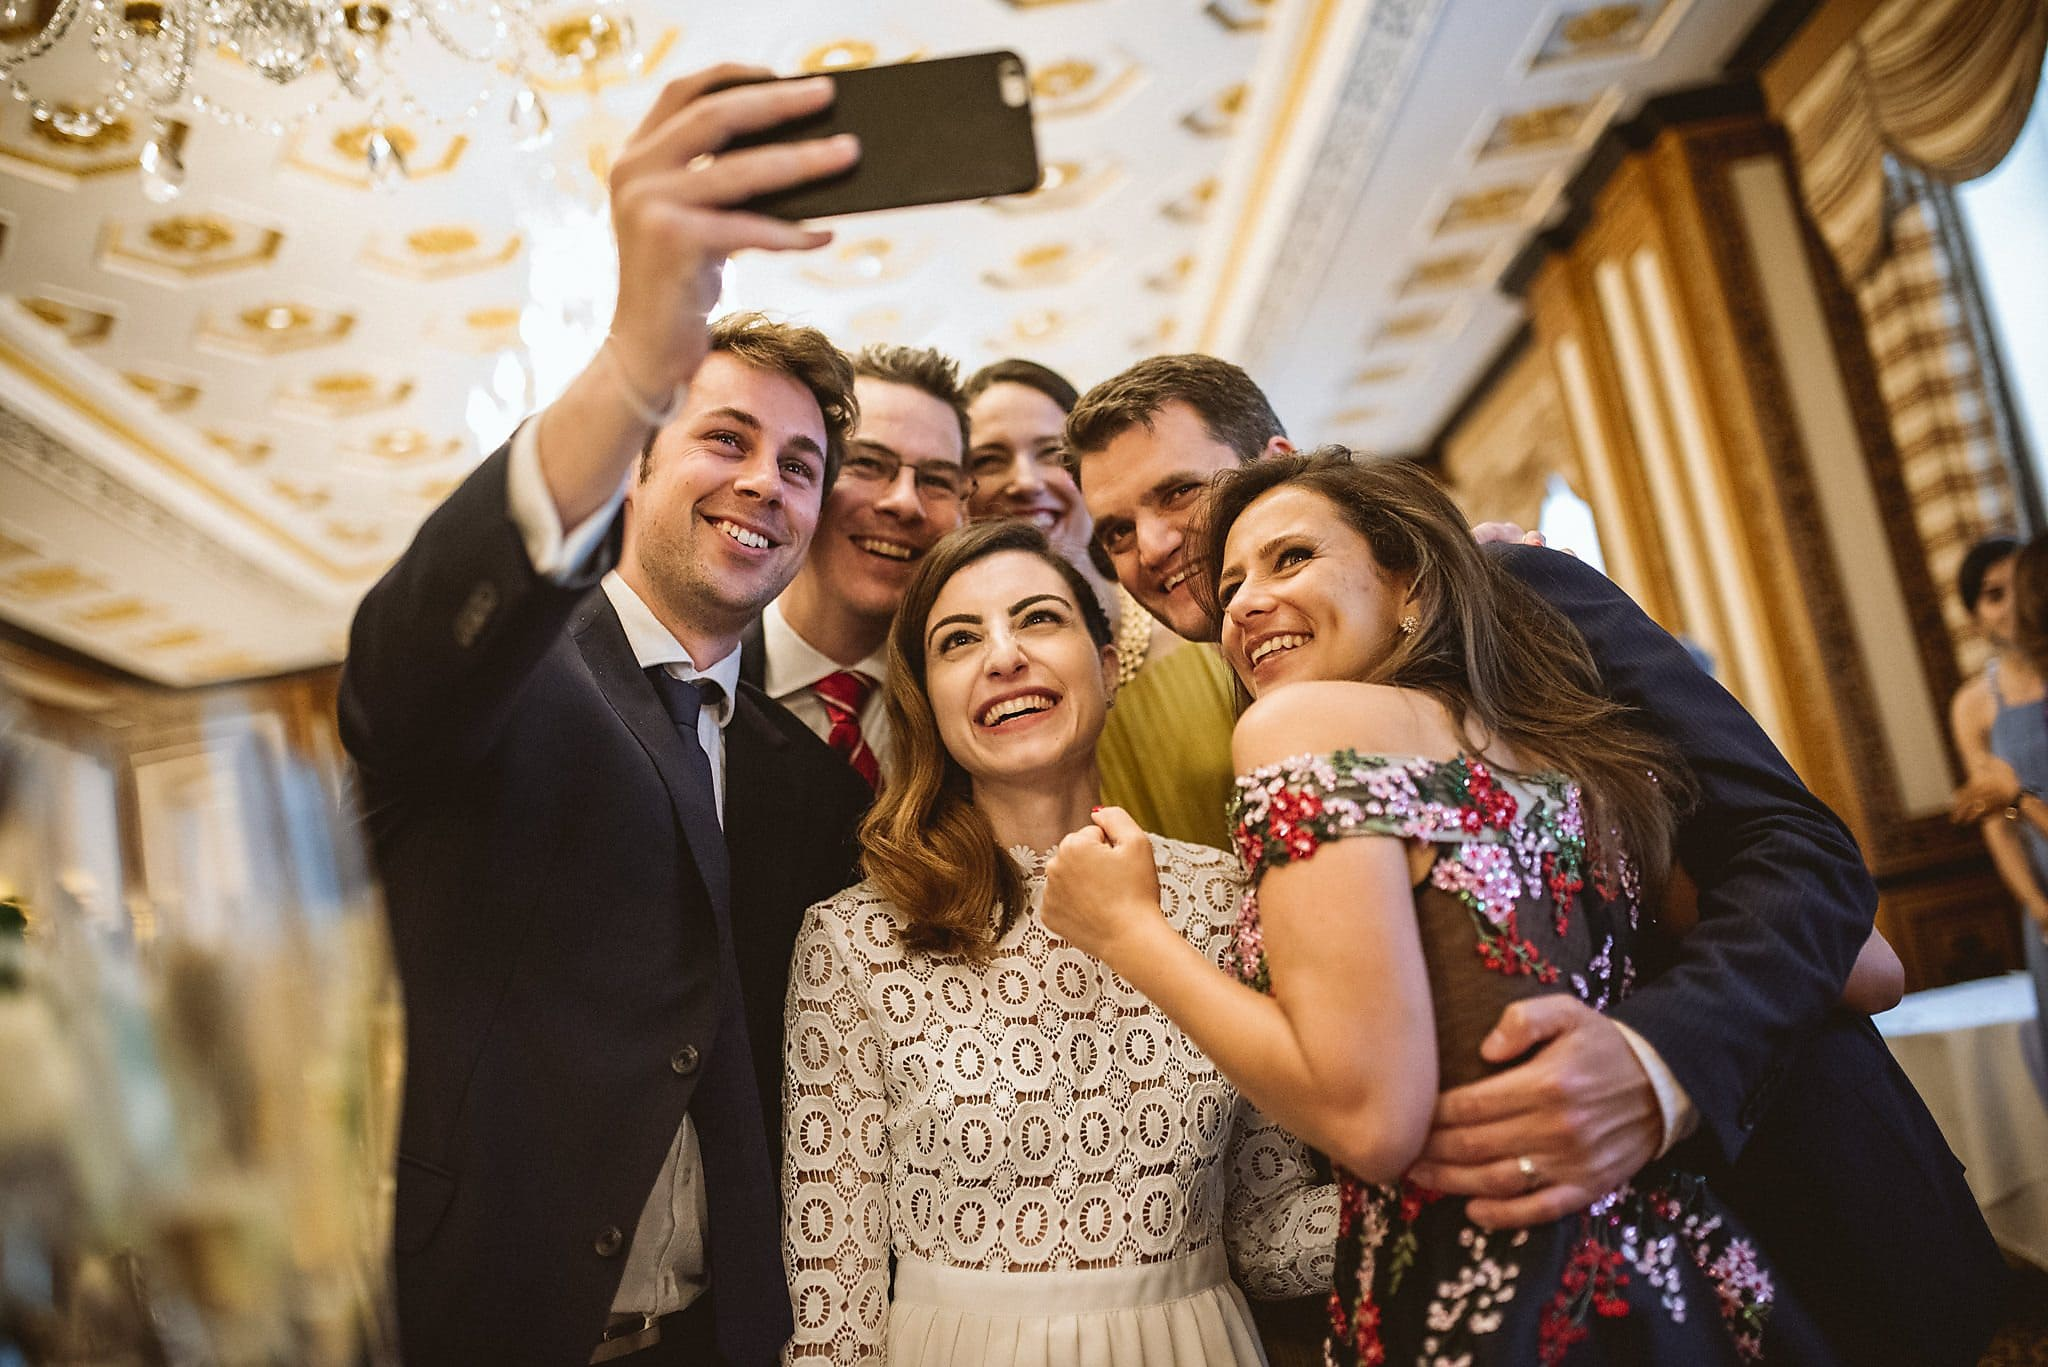 Guest takes a selfie with the bride at The Lanesborough wedding